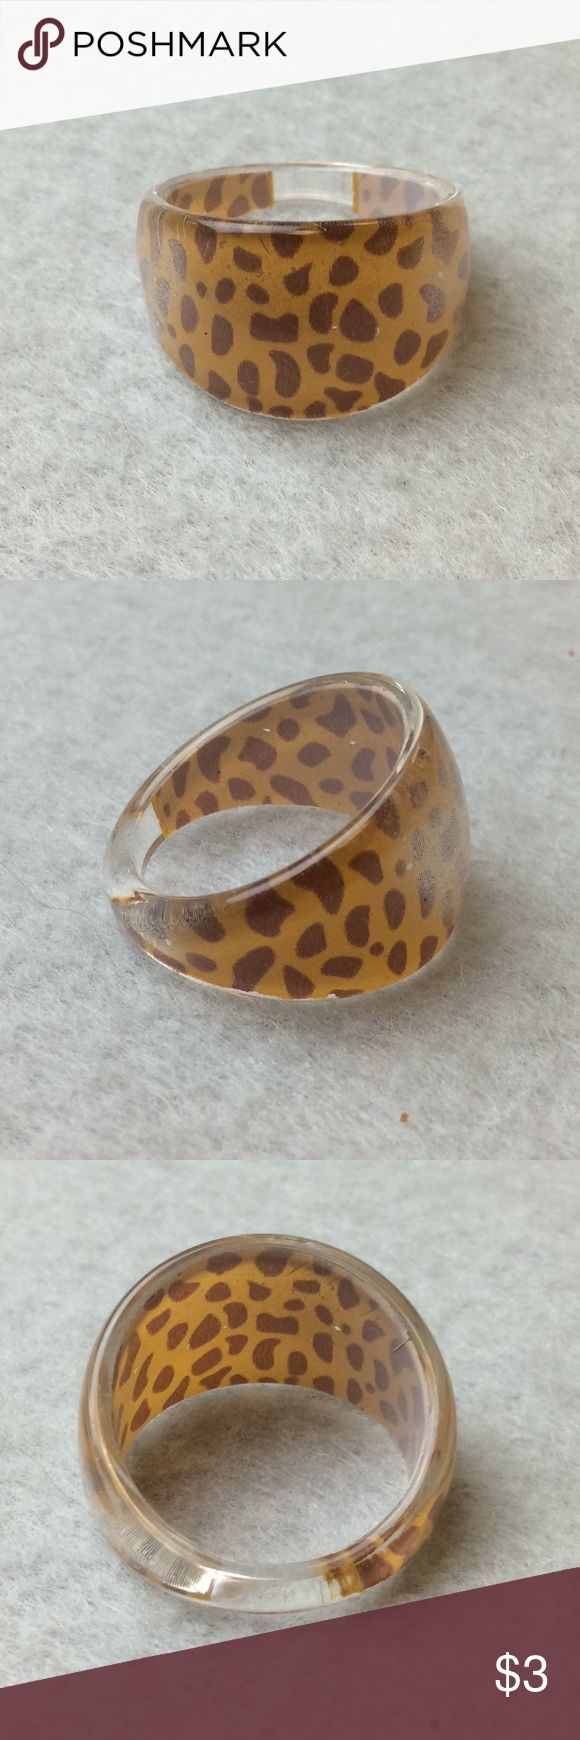 New Animal Print Ring - Size 6 Bundle 3 or more items and Save 20% 3739 Jewelry Rings